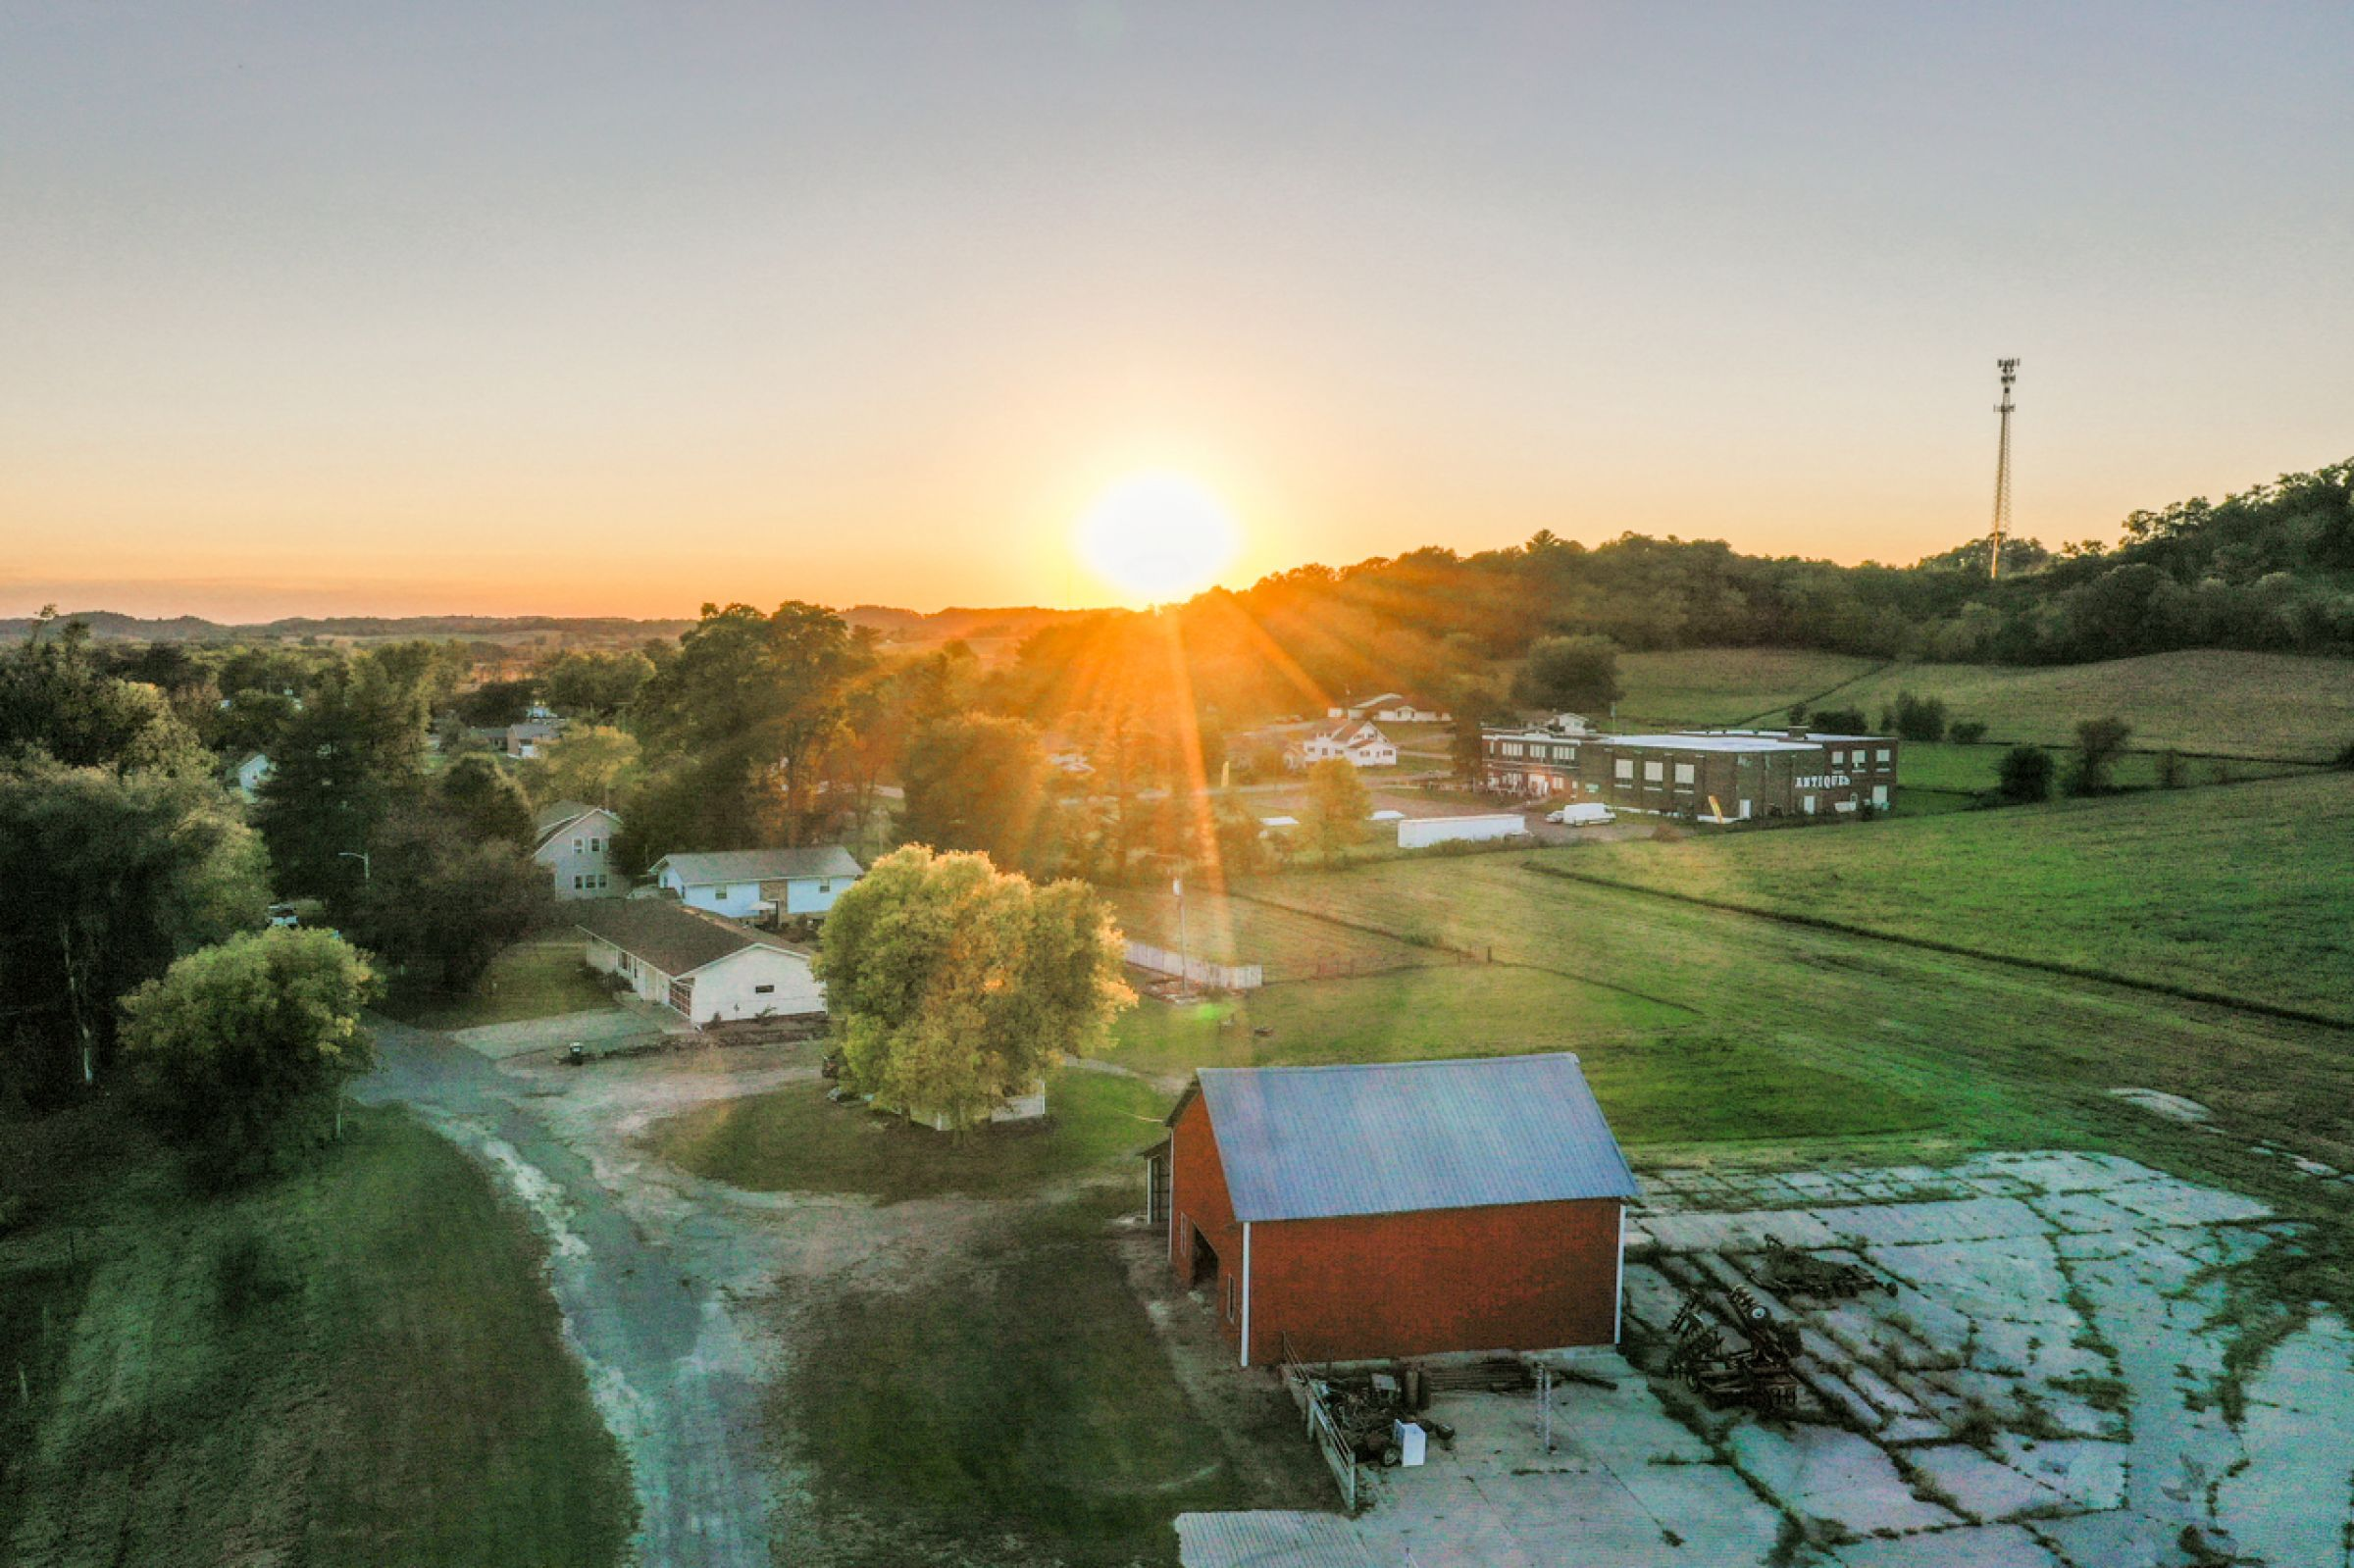 auctions-land-jackson-county-wisconsin-170-acres-listing-number-15737-4-2021-09-16-175247.jpg